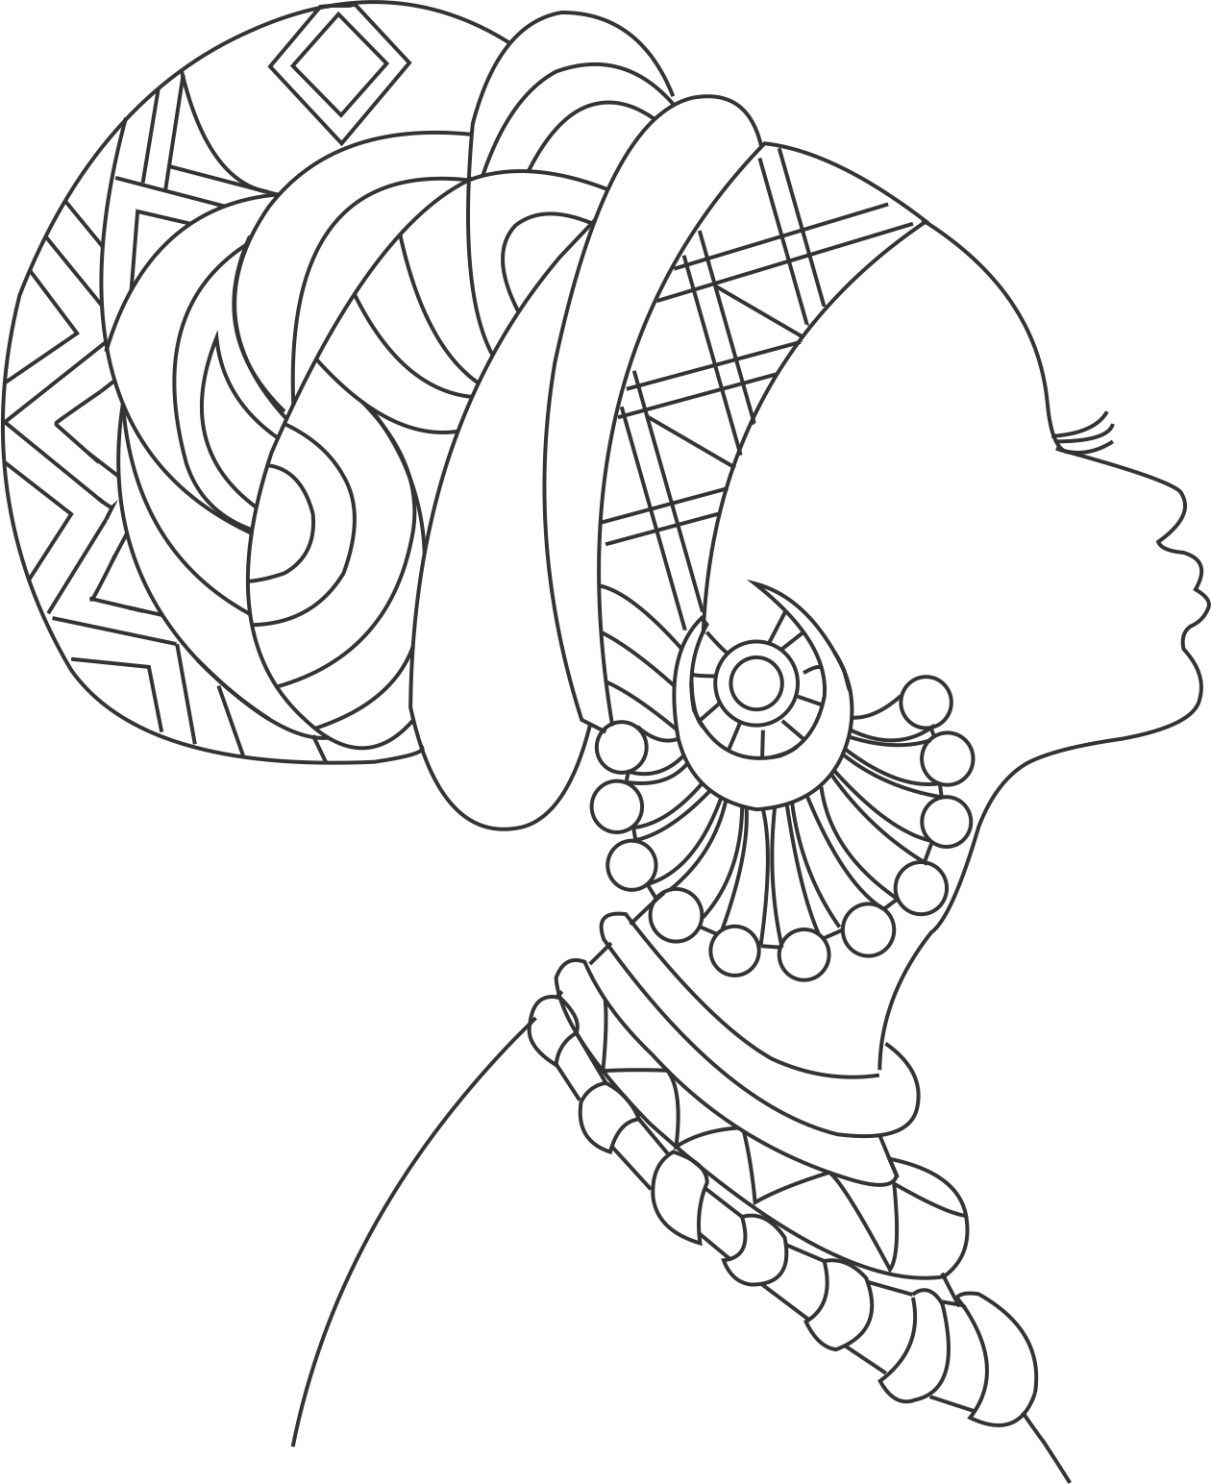 Thandiswa Outline